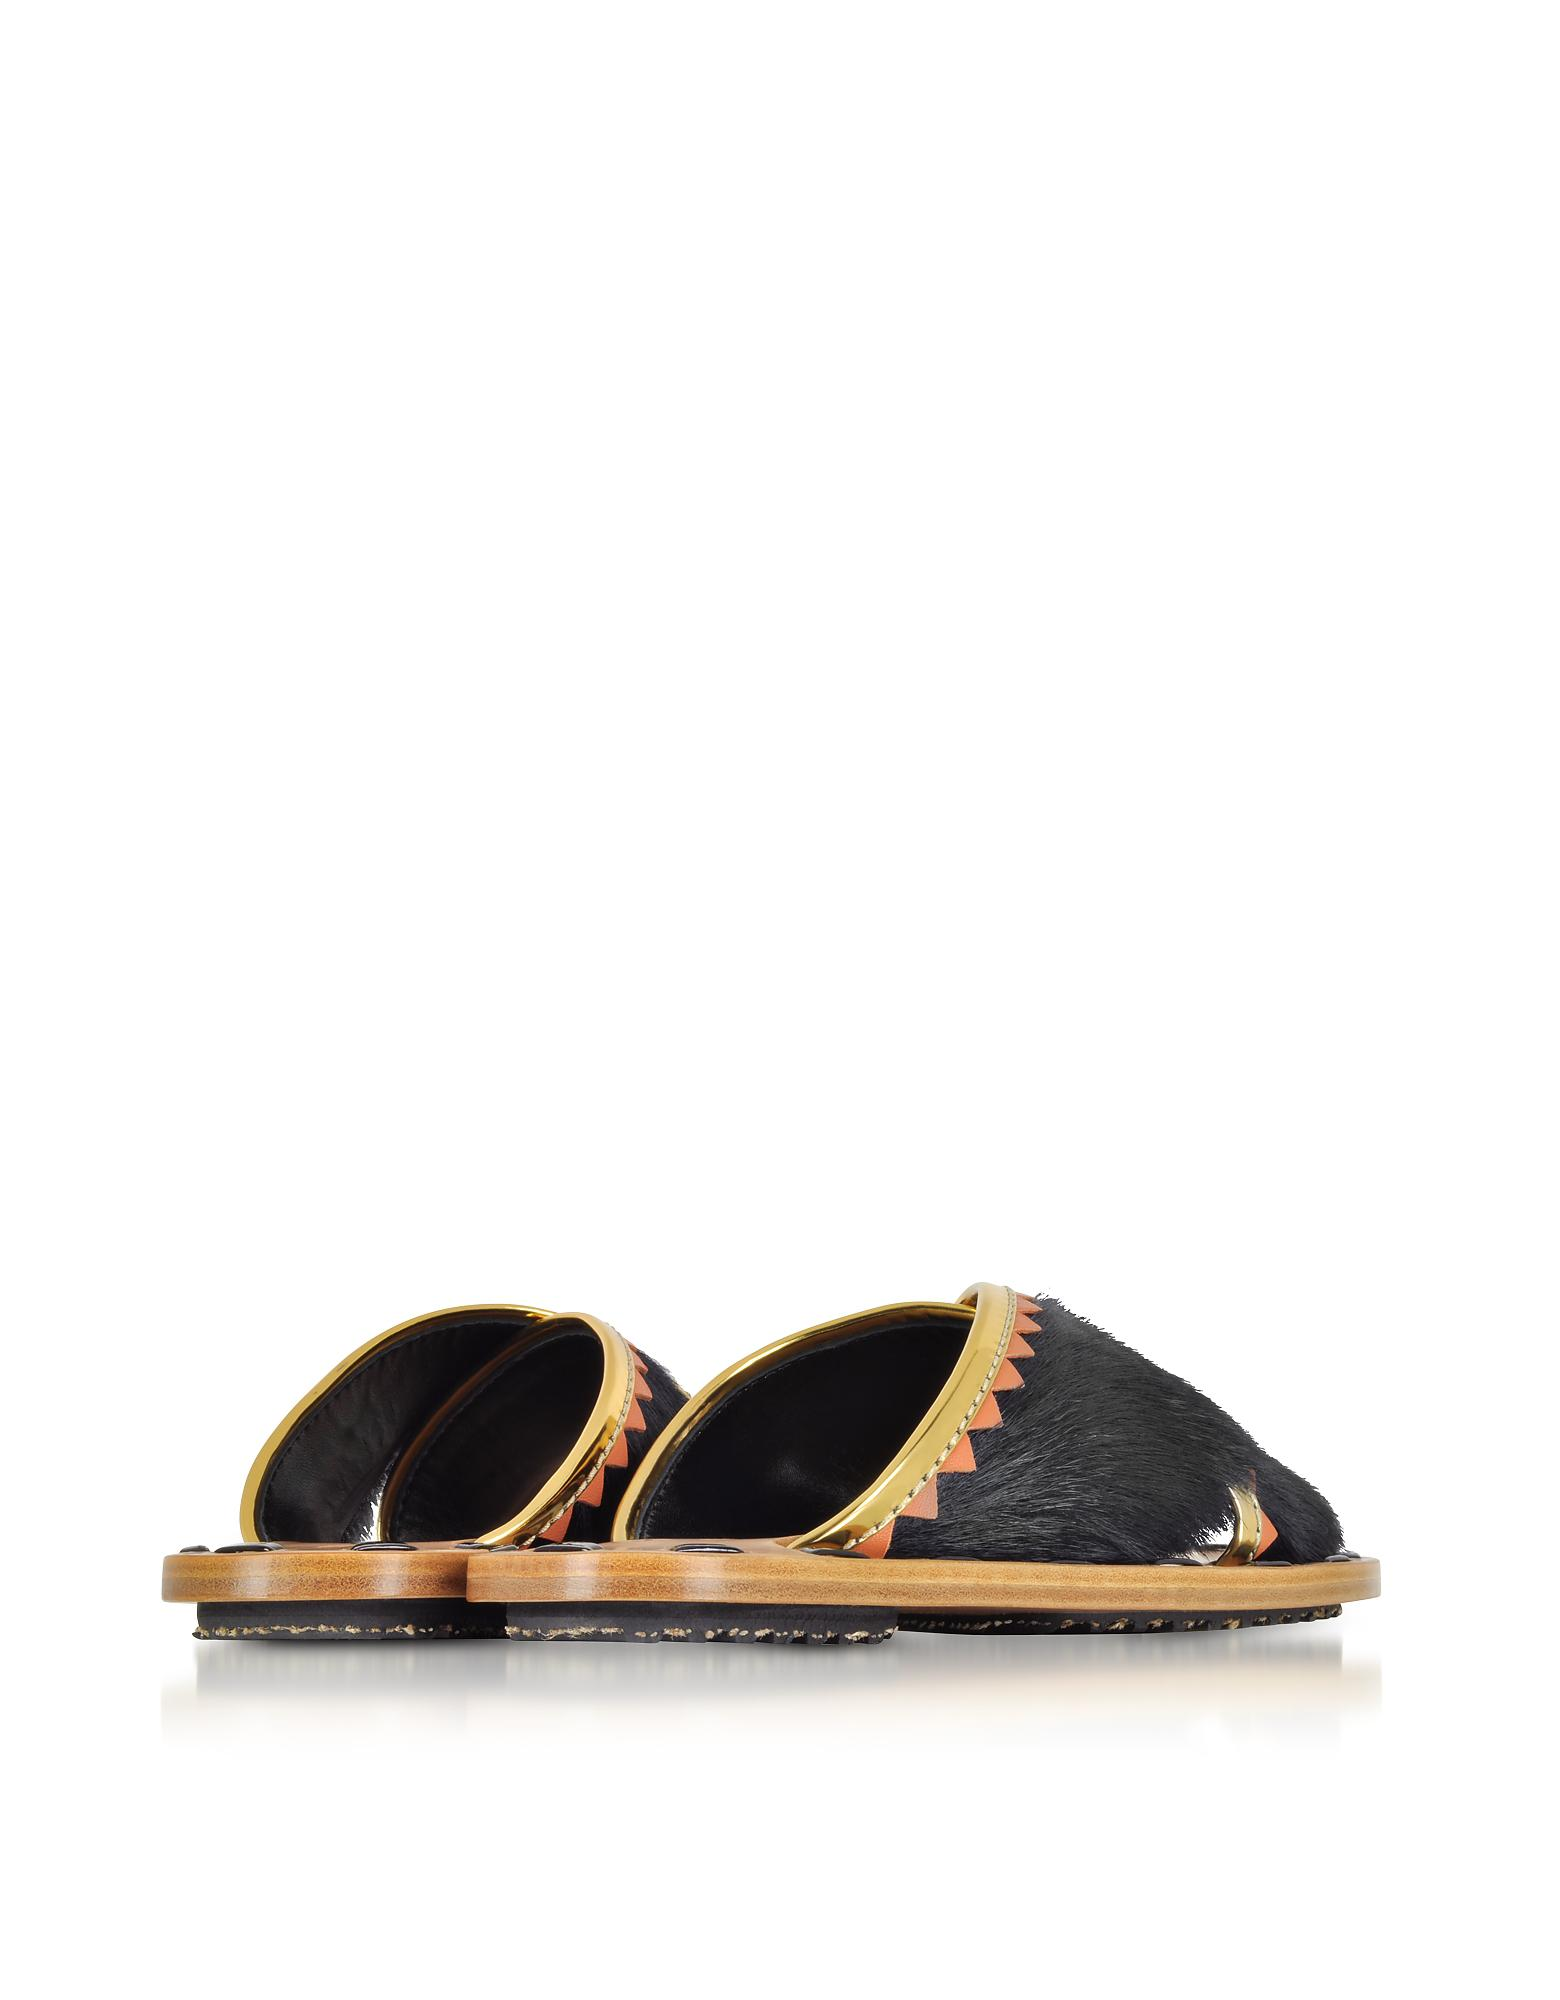 Marni Shoes, Haircalf and Laminated Leather Crossover Slide Sandals